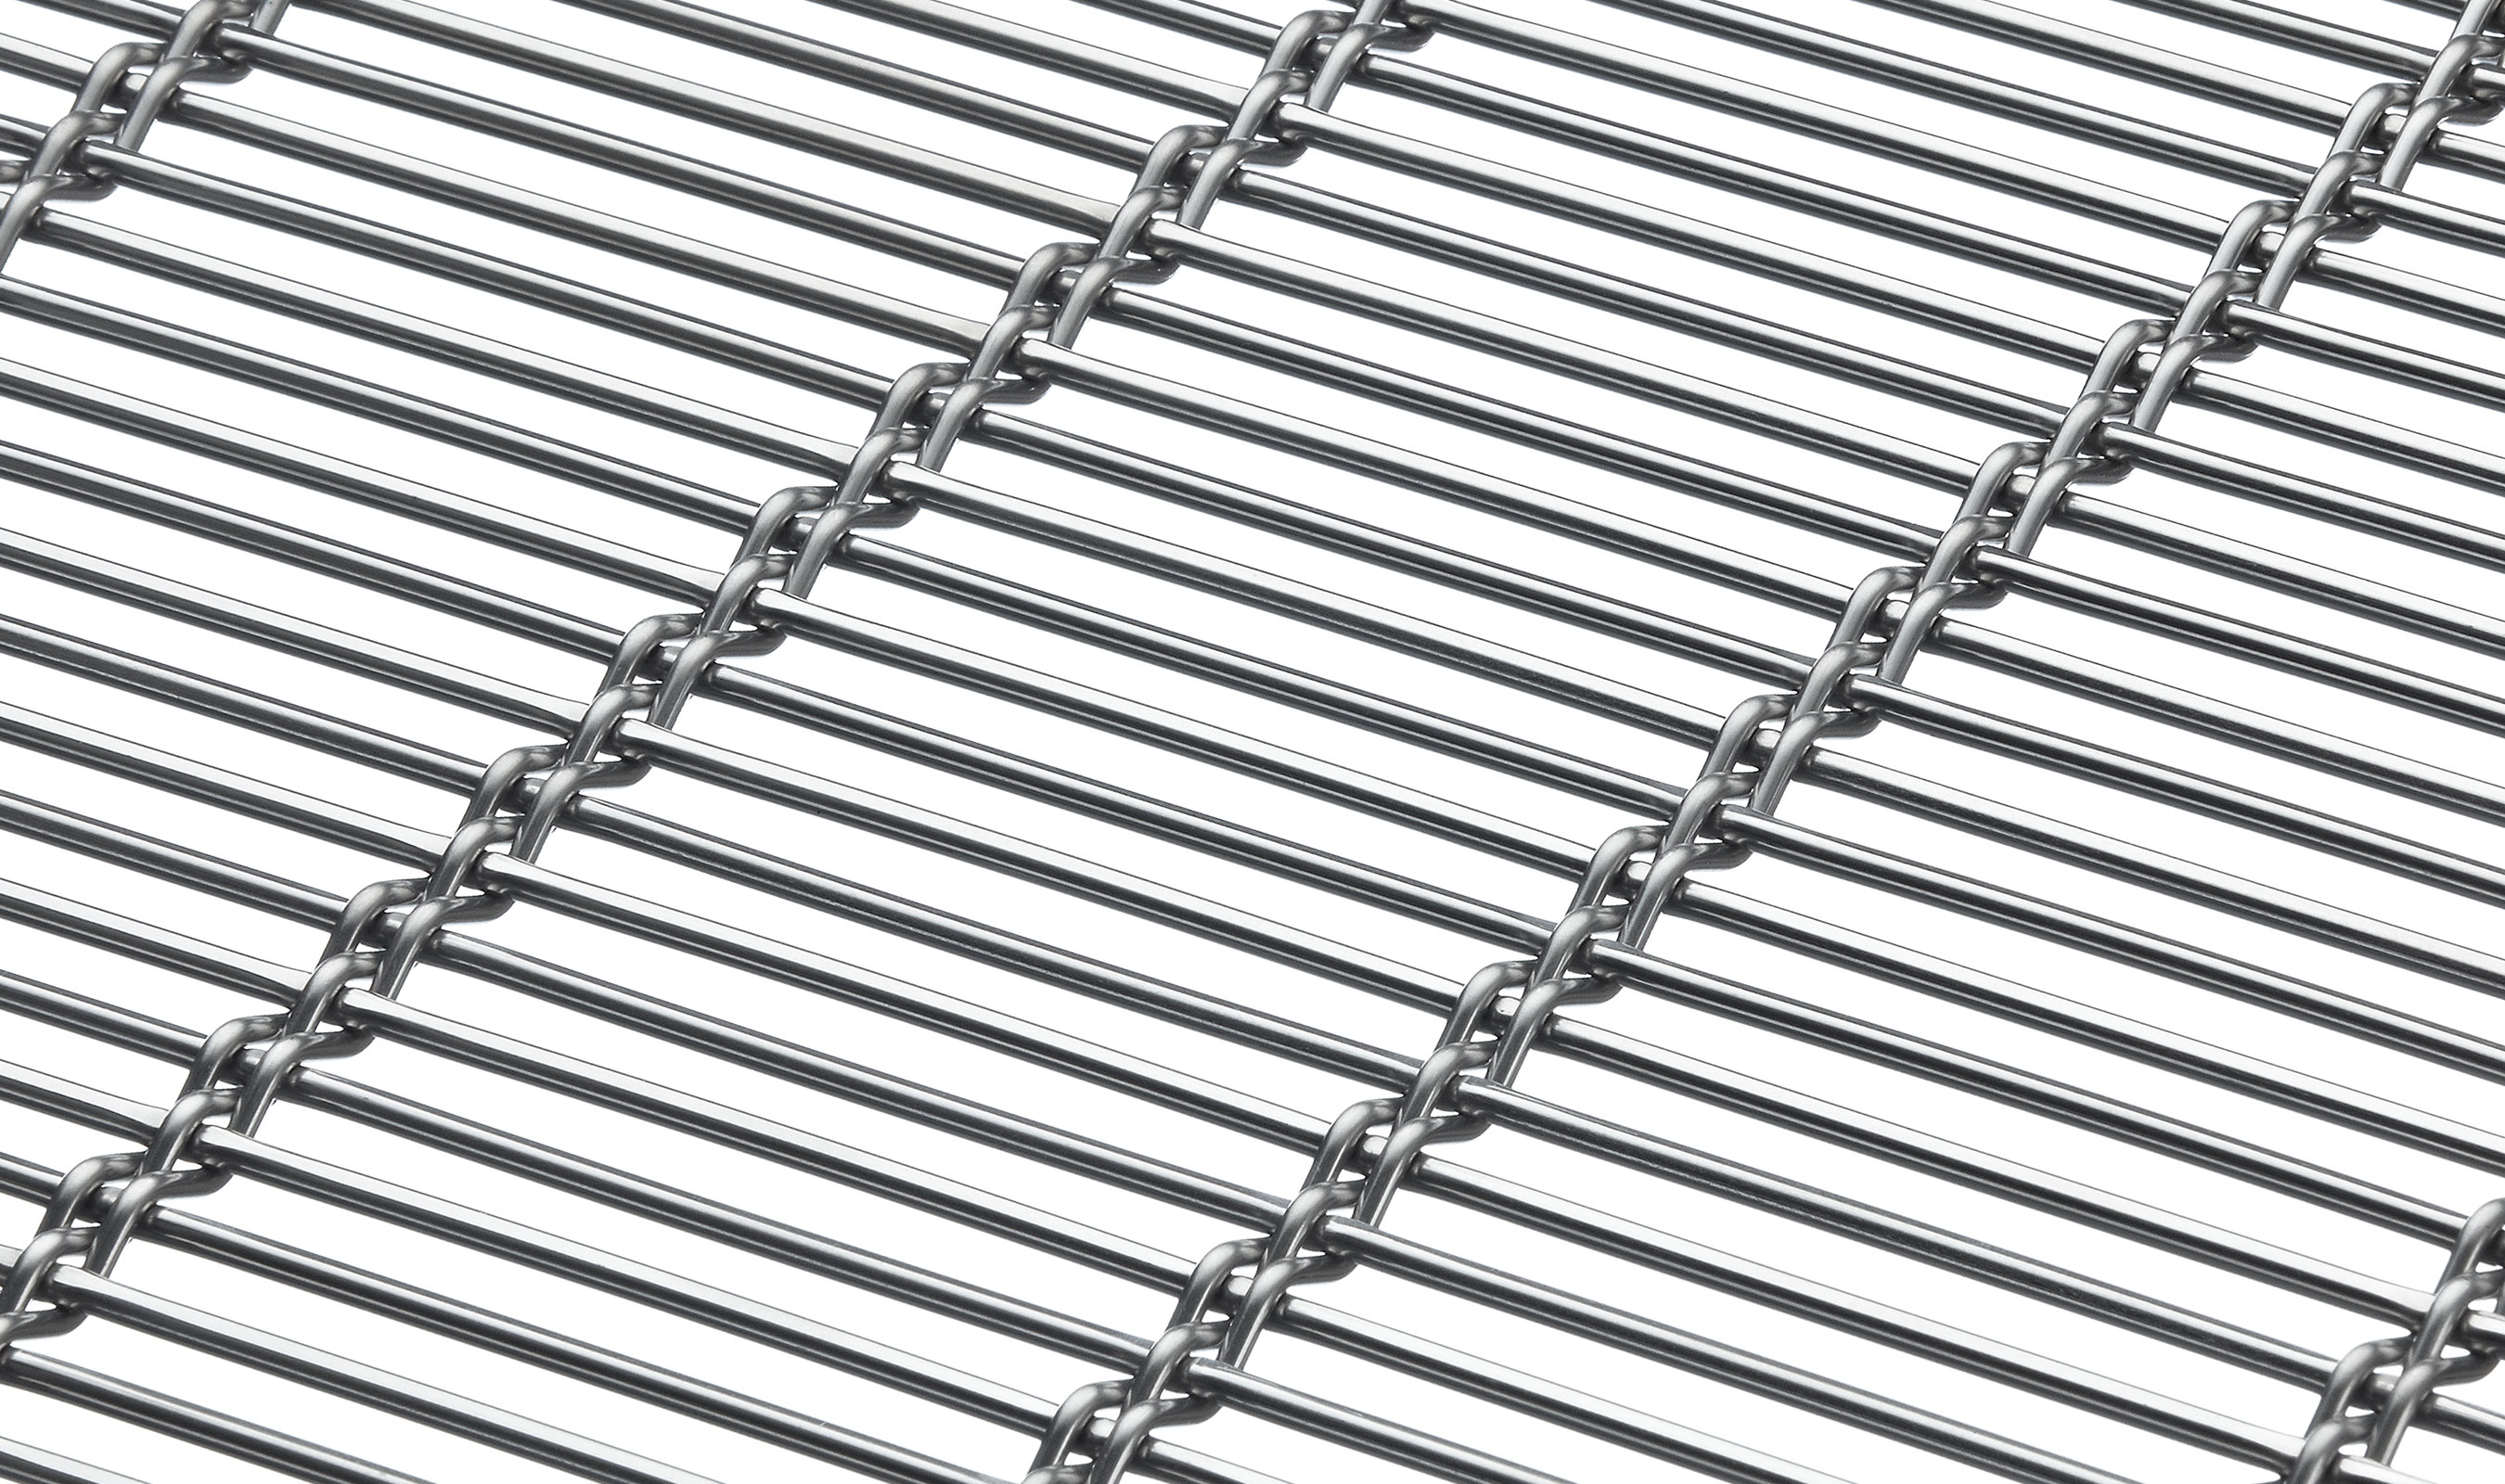 M13Z-179 Angle in Stainless Woven Wire Mesh